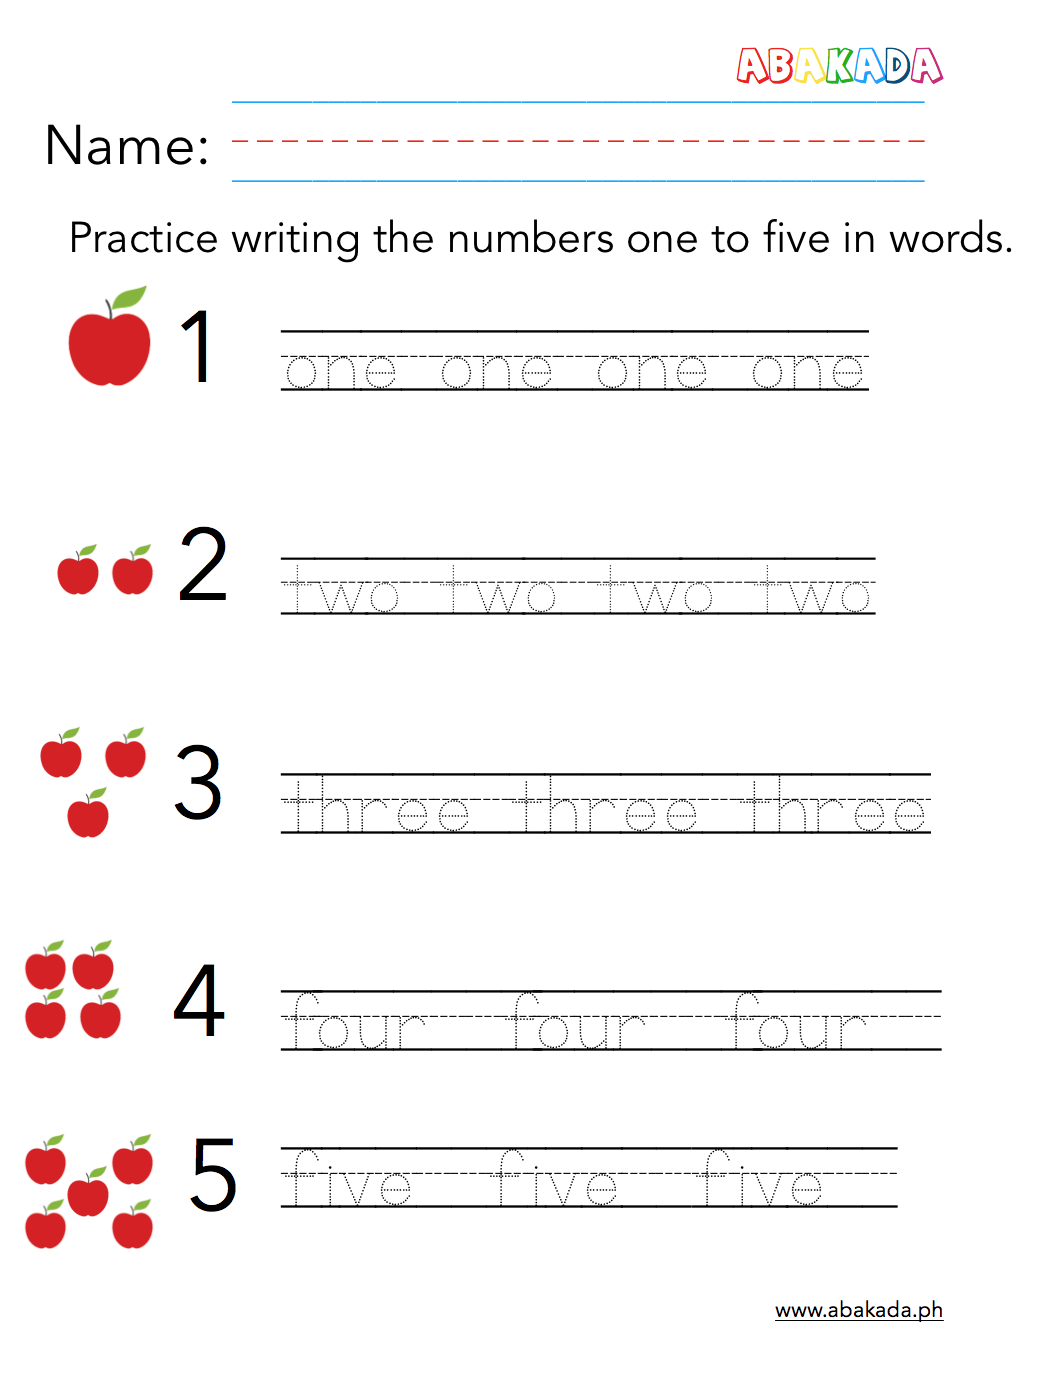 Free Preschool Worksheet Abakada Ph